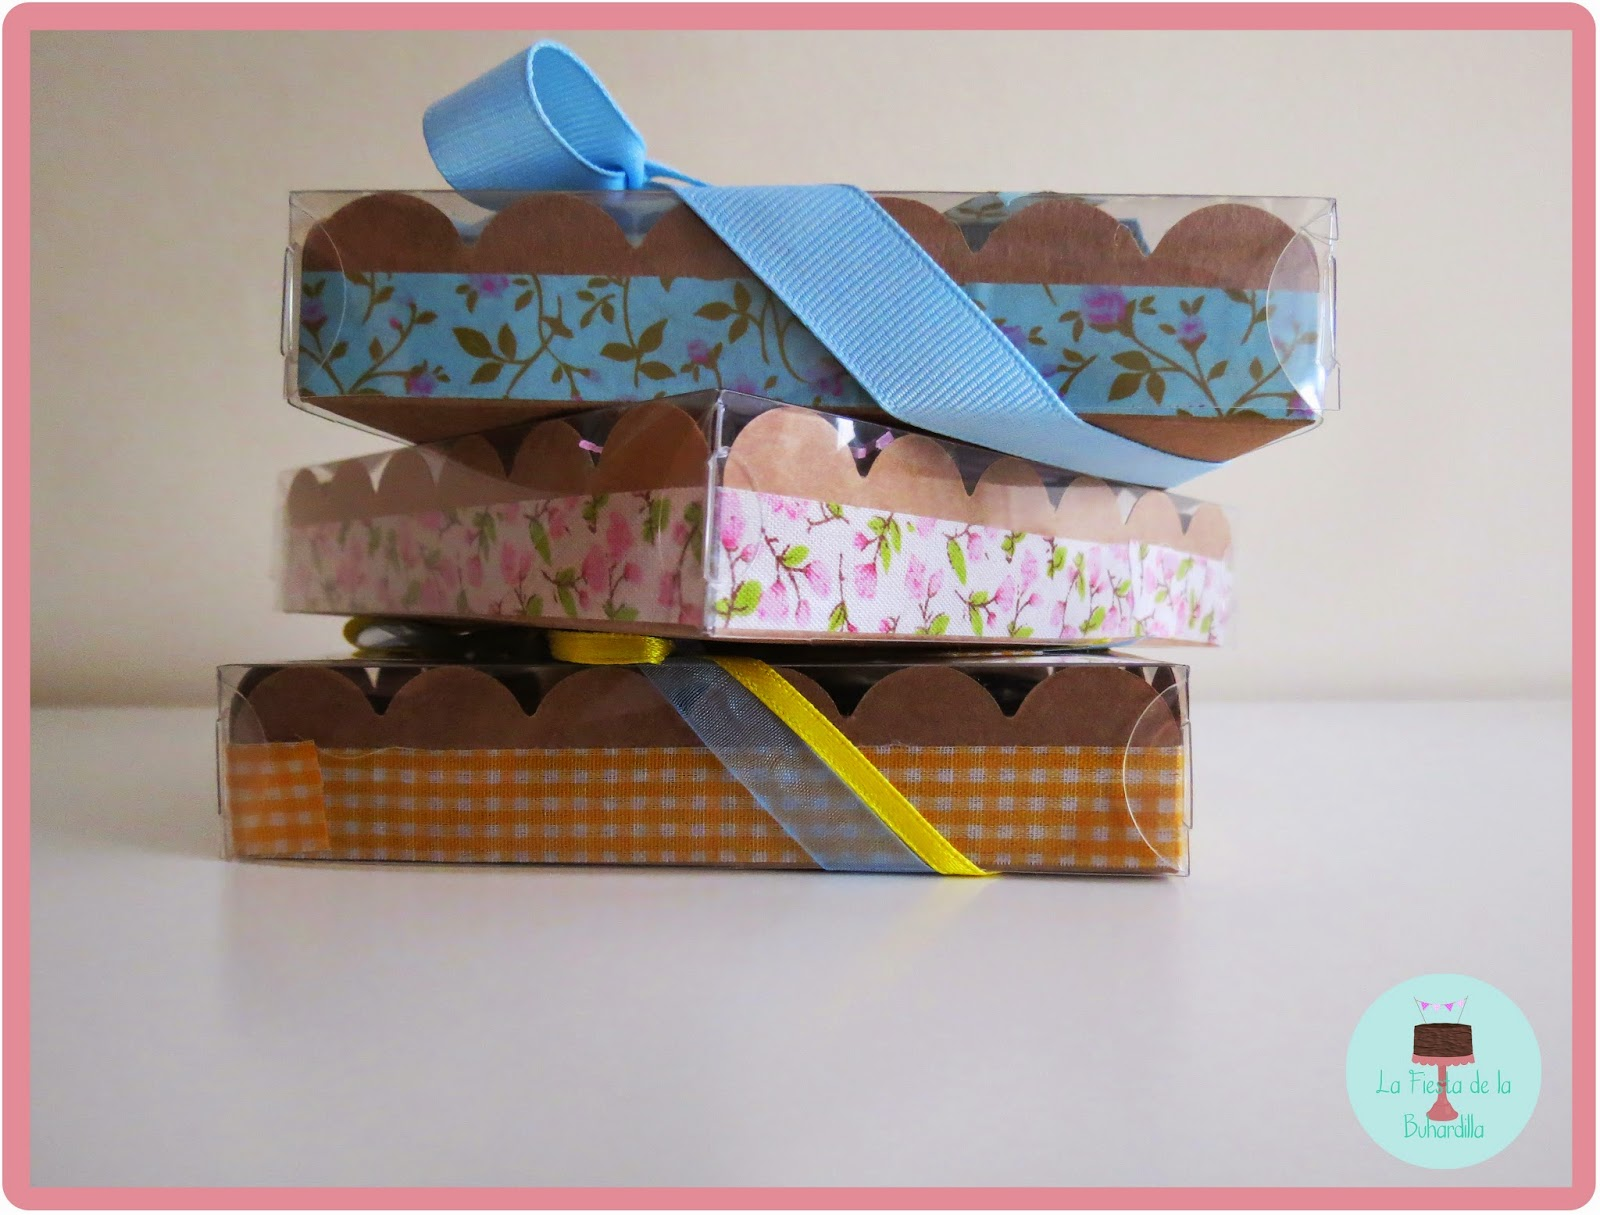 cajitas decoradas con washi tape